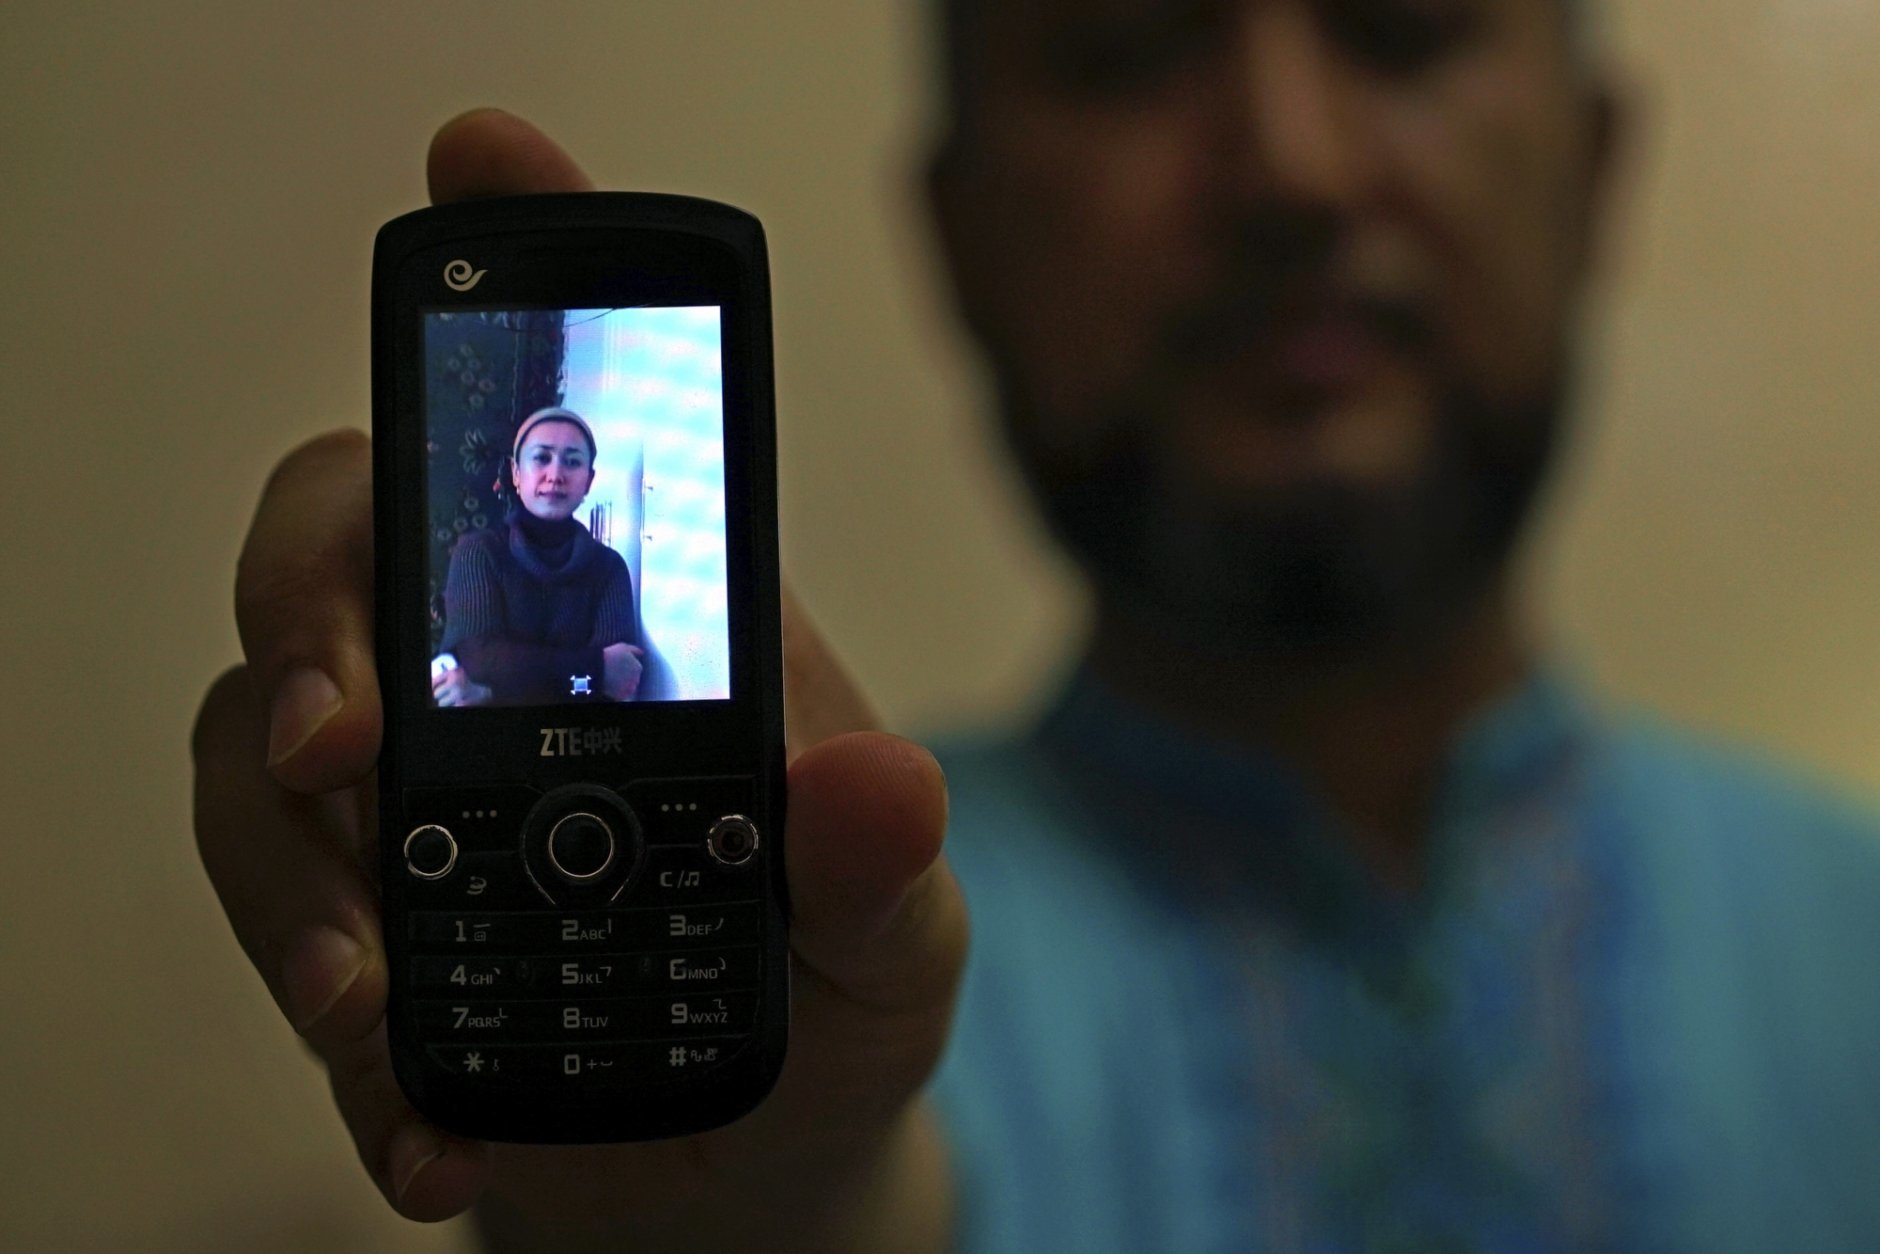 """In this Aug. 24, 2018, photo, Halmurat Idris holds up a picture of his elder sister on his phone at his home in Istanbul, Turkey. Idris says his sisters were monitored as part of a government homestay program, part of a broader crackdown on religious expression in China's far western region of Xinjiang. While in exile in Turkey, he had spotted a picture of his ethnic Uighur sister and an elderly woman of China's Han majority together, with the caption declaring that his sister had found a """"Han Chinese mother"""". (AP Photo/Dake Kang)"""